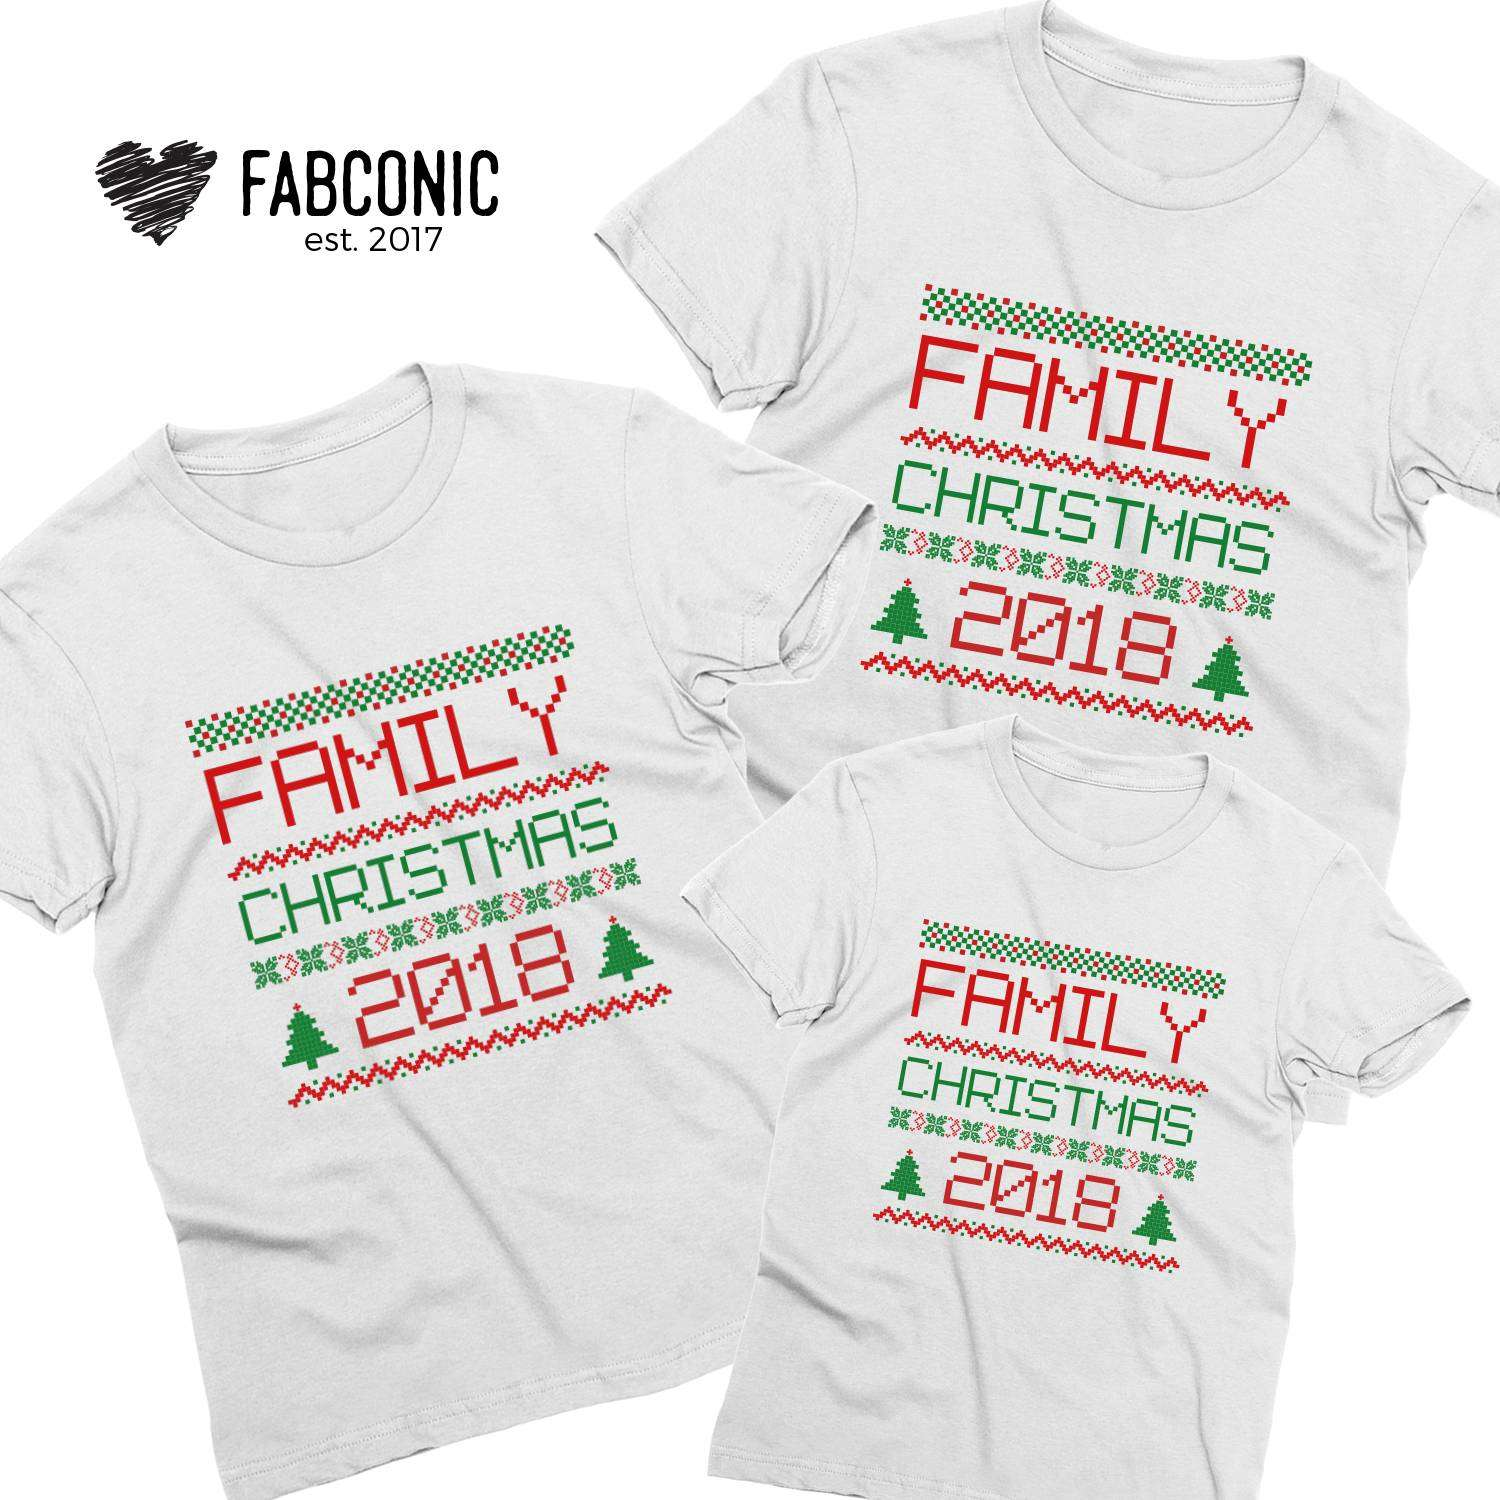 Matching Christmas Shirts For Family.Family Christmas 2018 Family Shirts